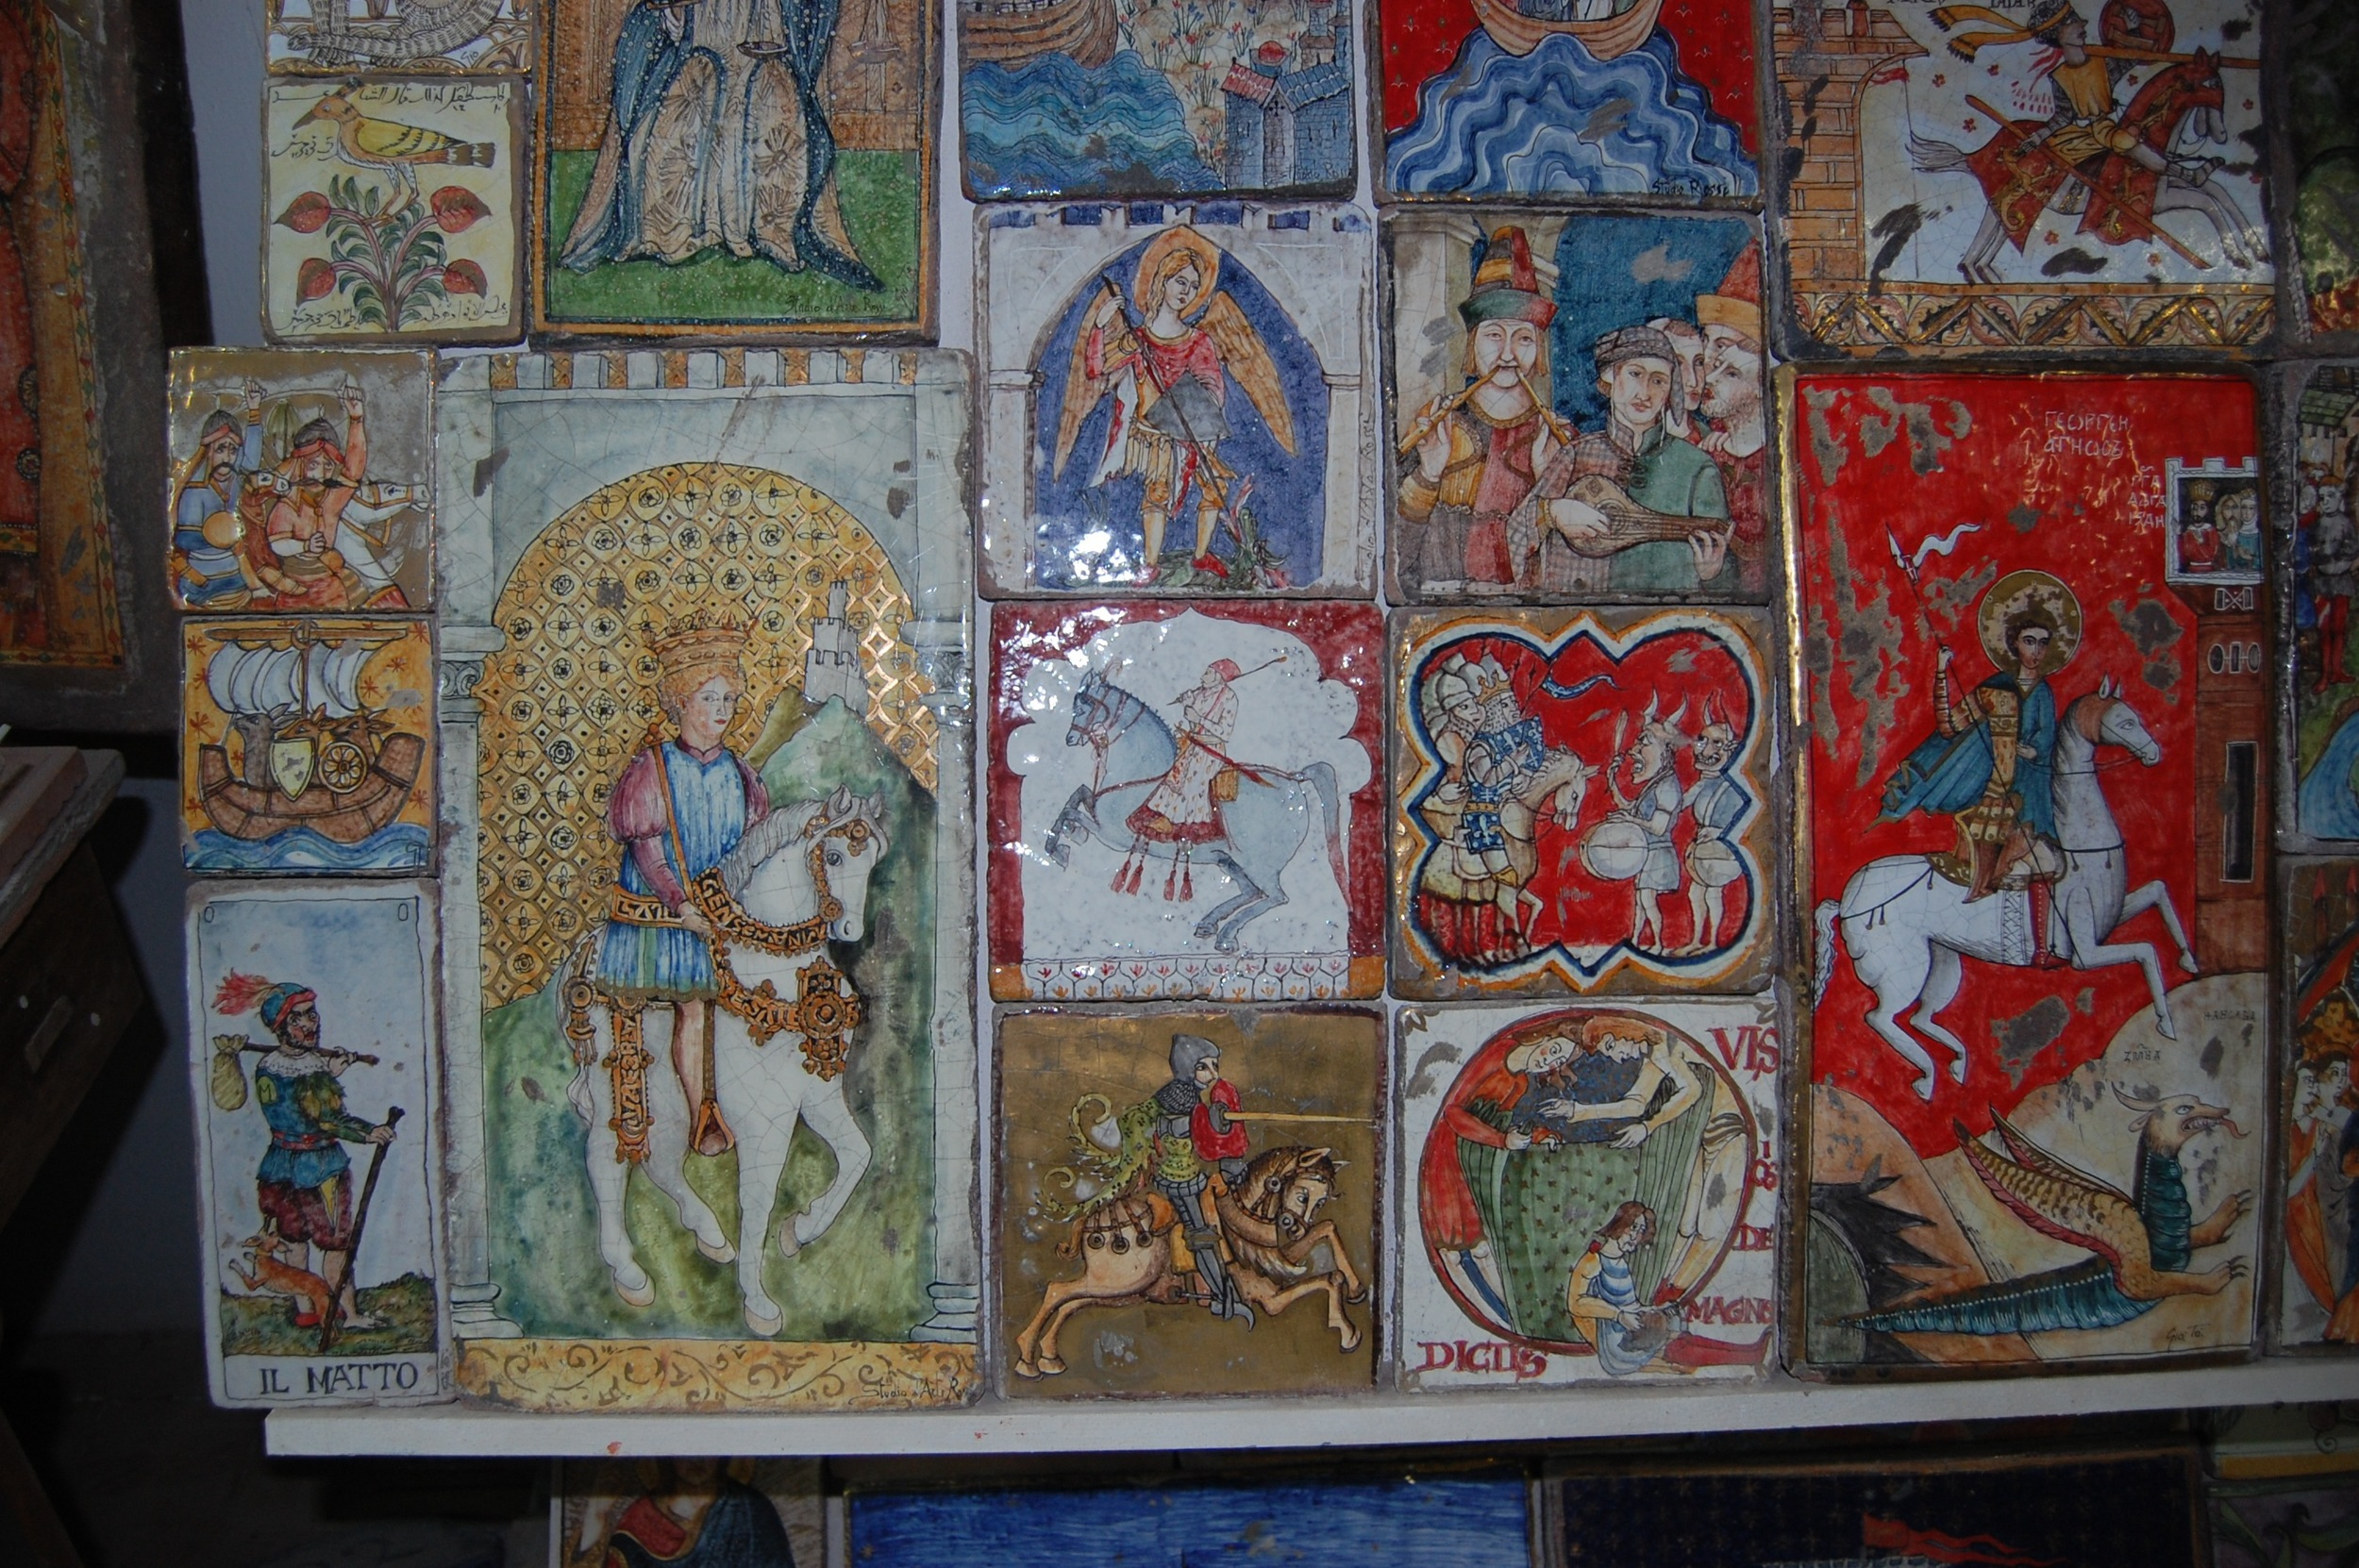 Some example tiles from the artist's studio